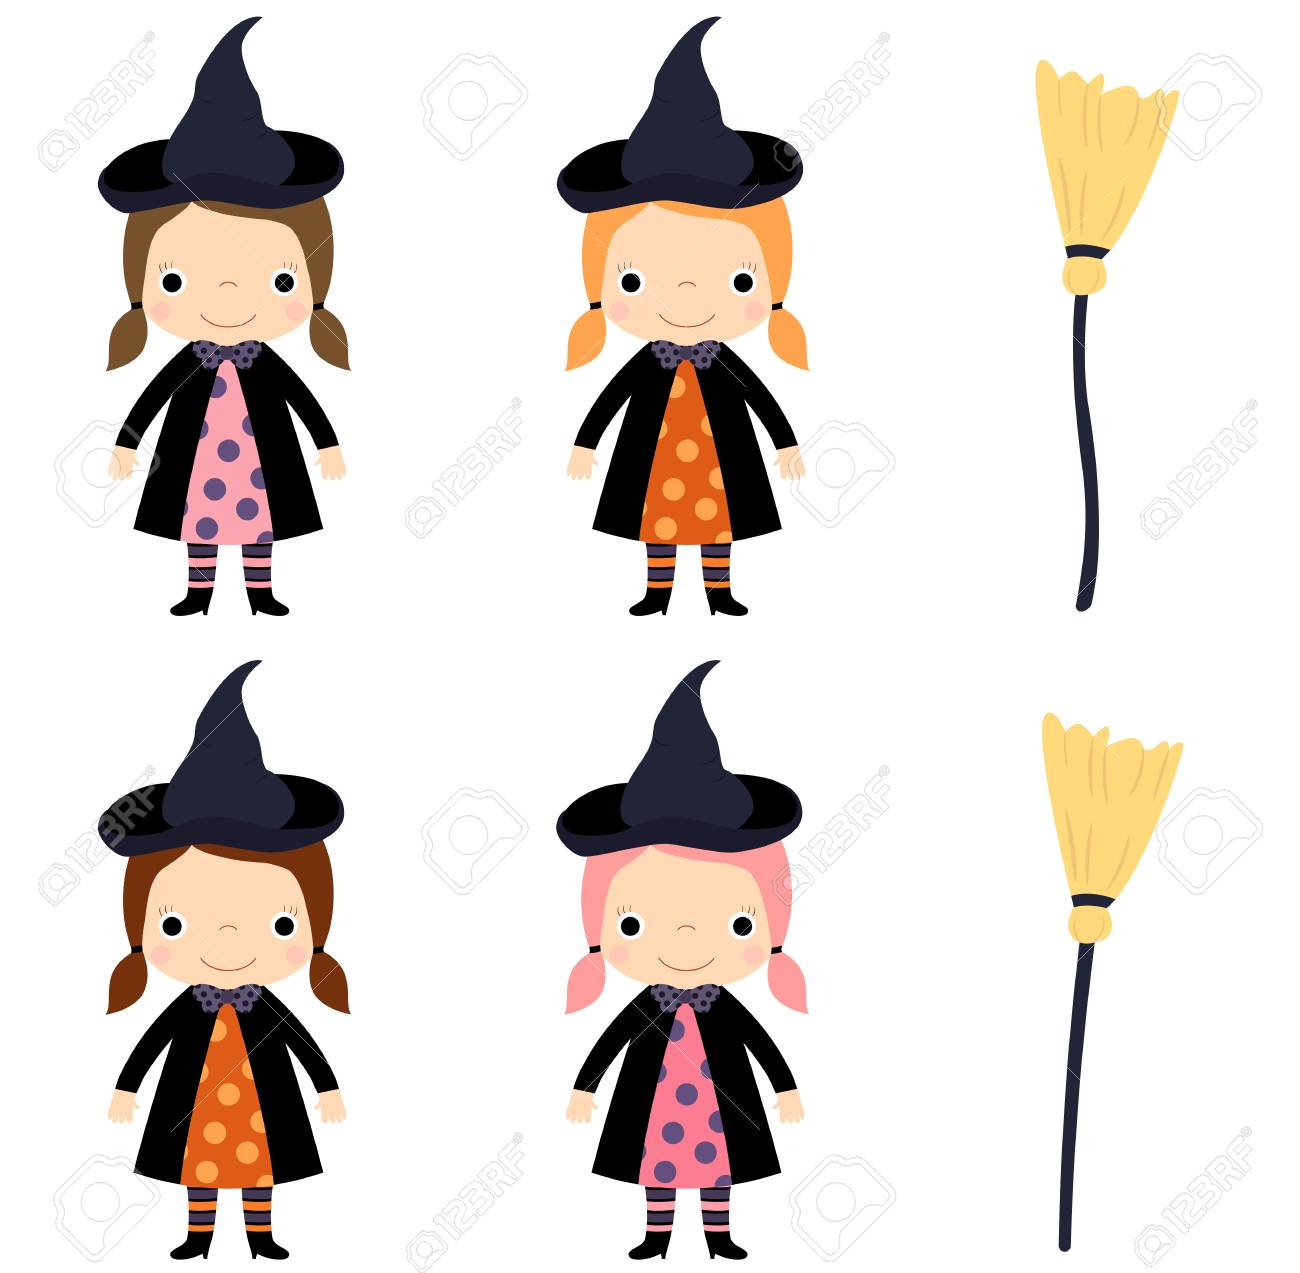 Cute Vector Little Girl In Witch Costume With Broom For Halloween